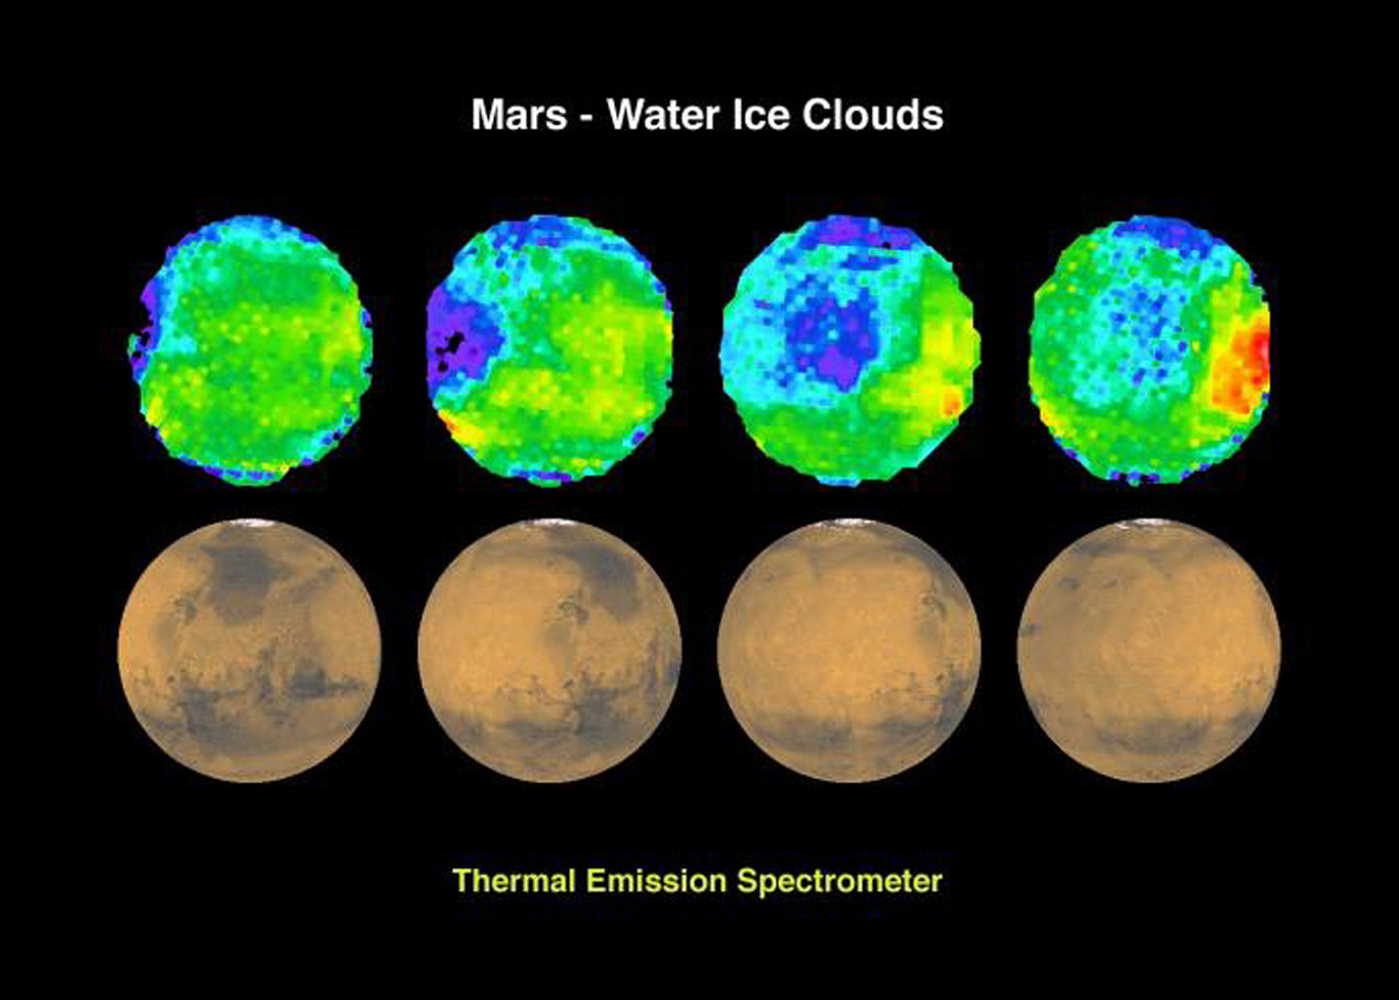 Water ice clouds on Mars are seen in this image from NASA's Mars Global Surveyor.